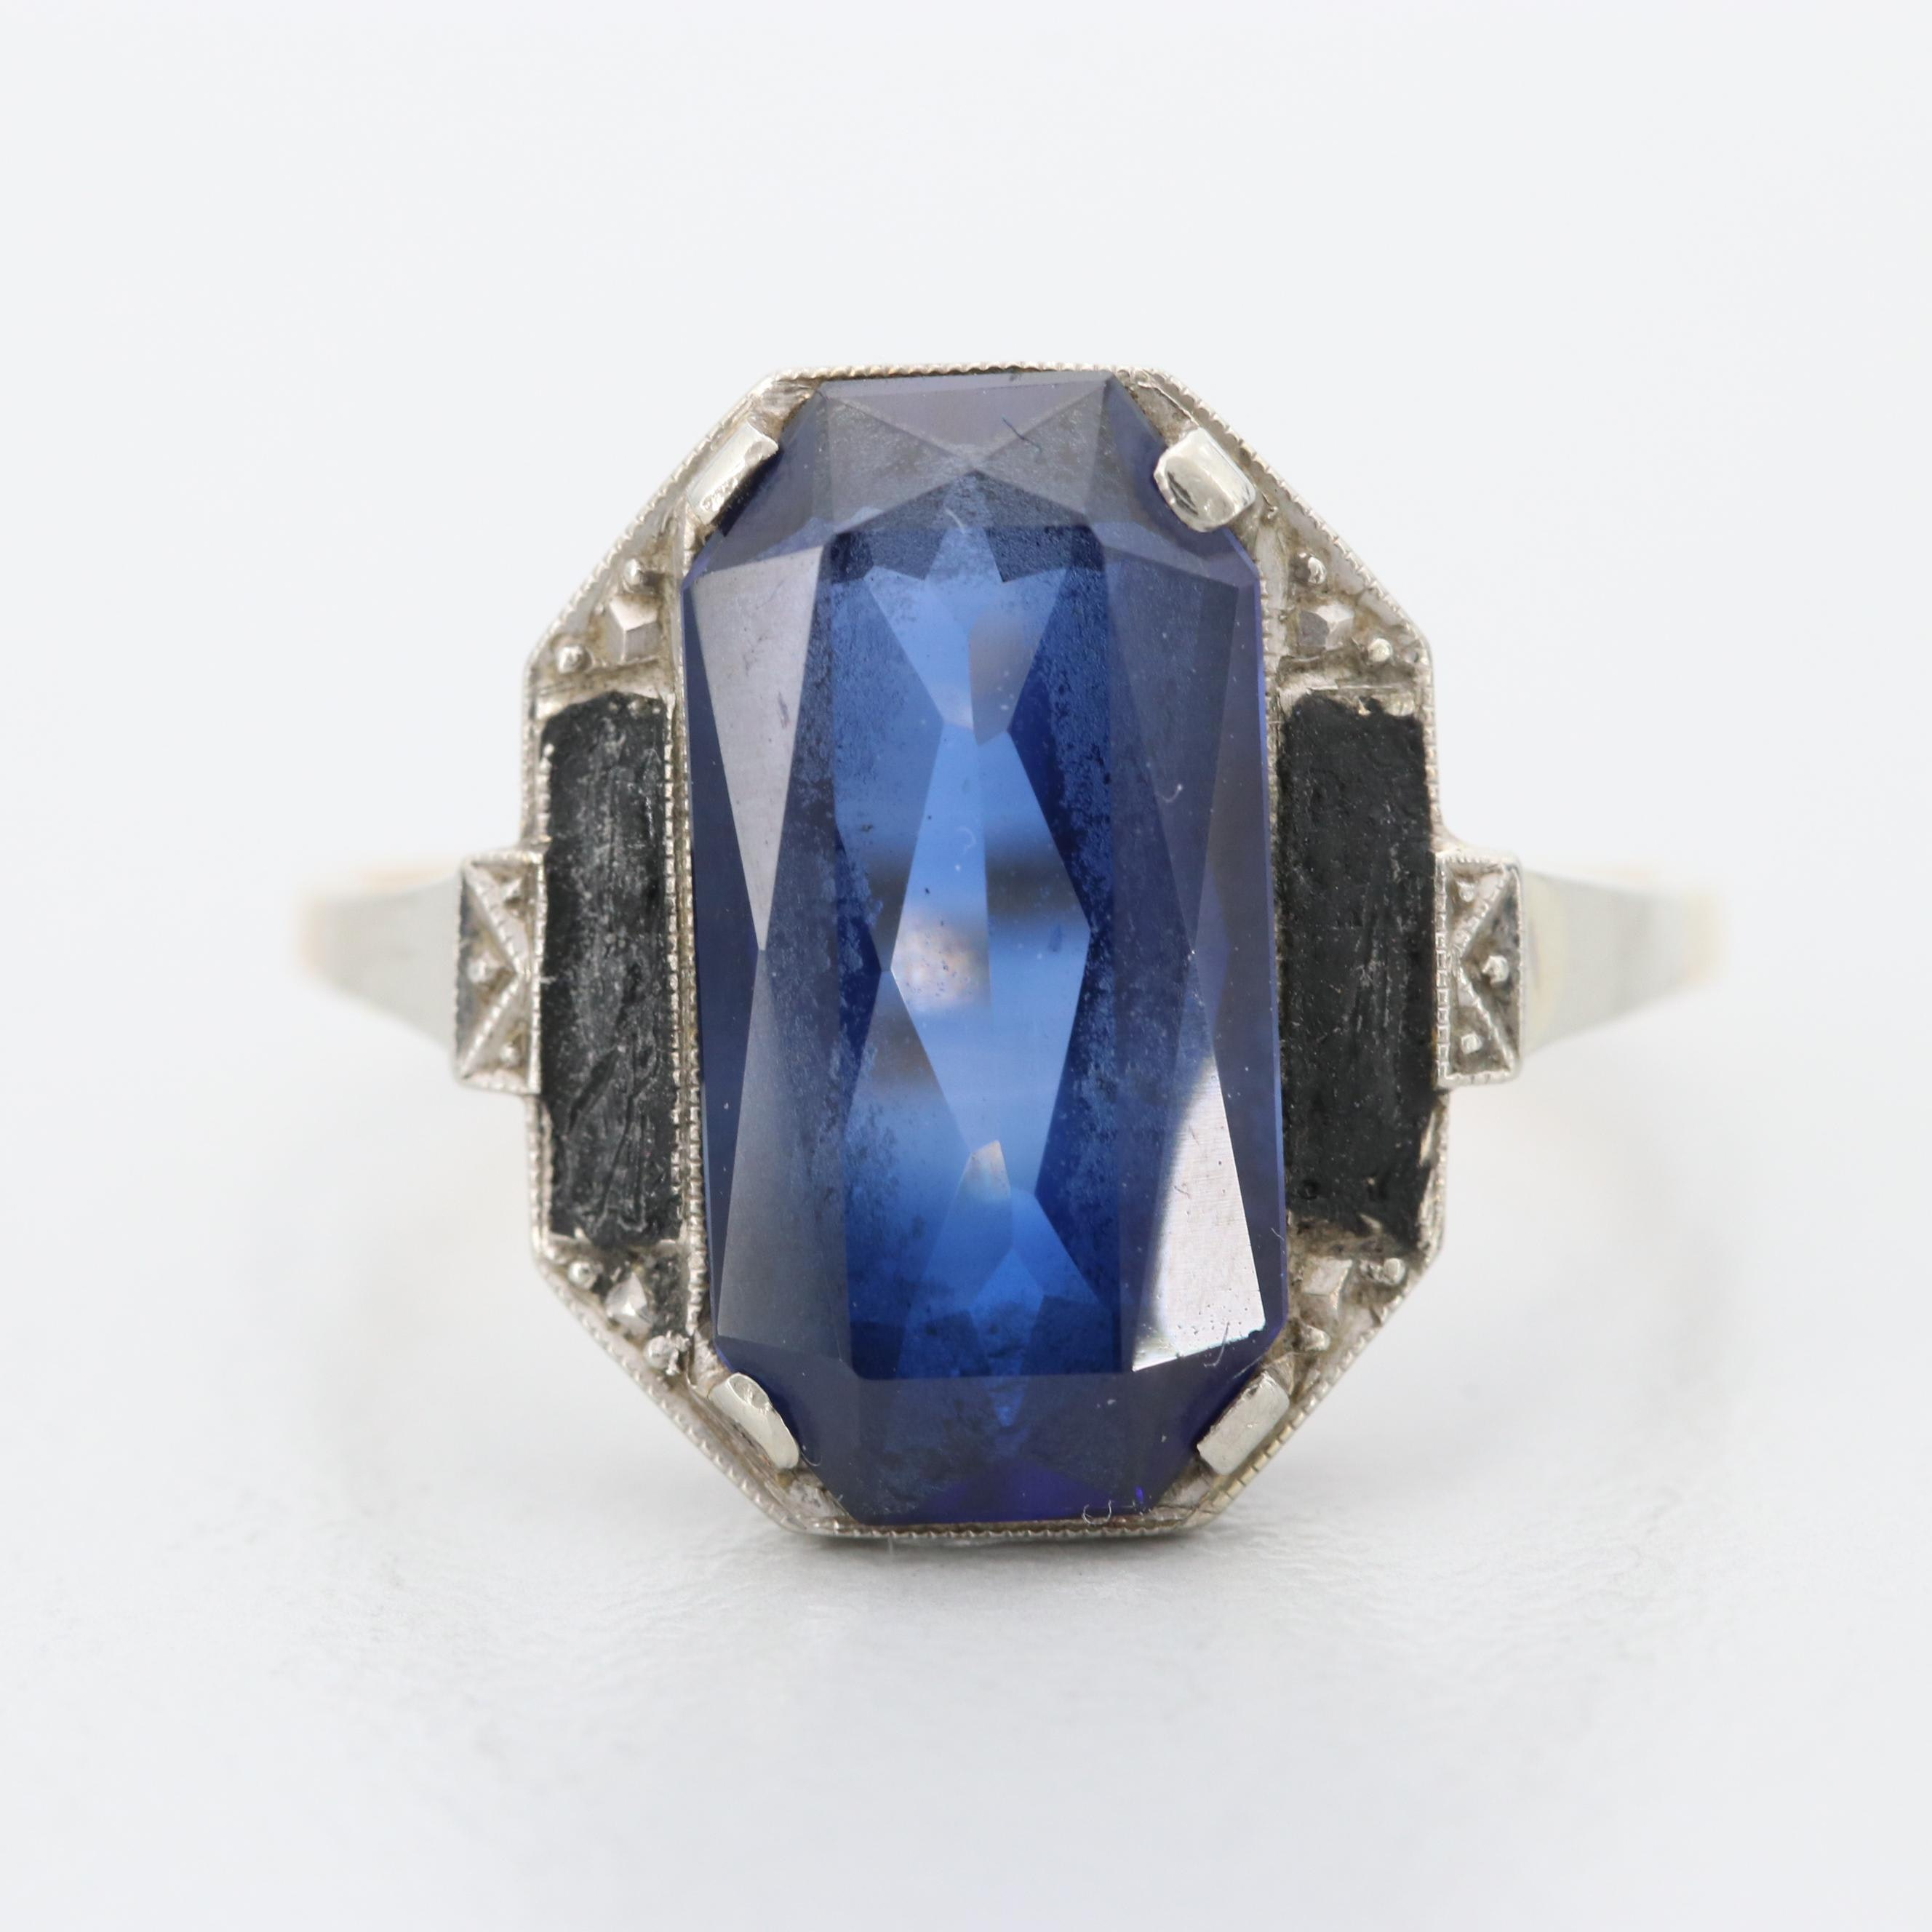 Art Deco Yugoslavian 14K Yellow and White Gold Synthetic Sapphire Ring